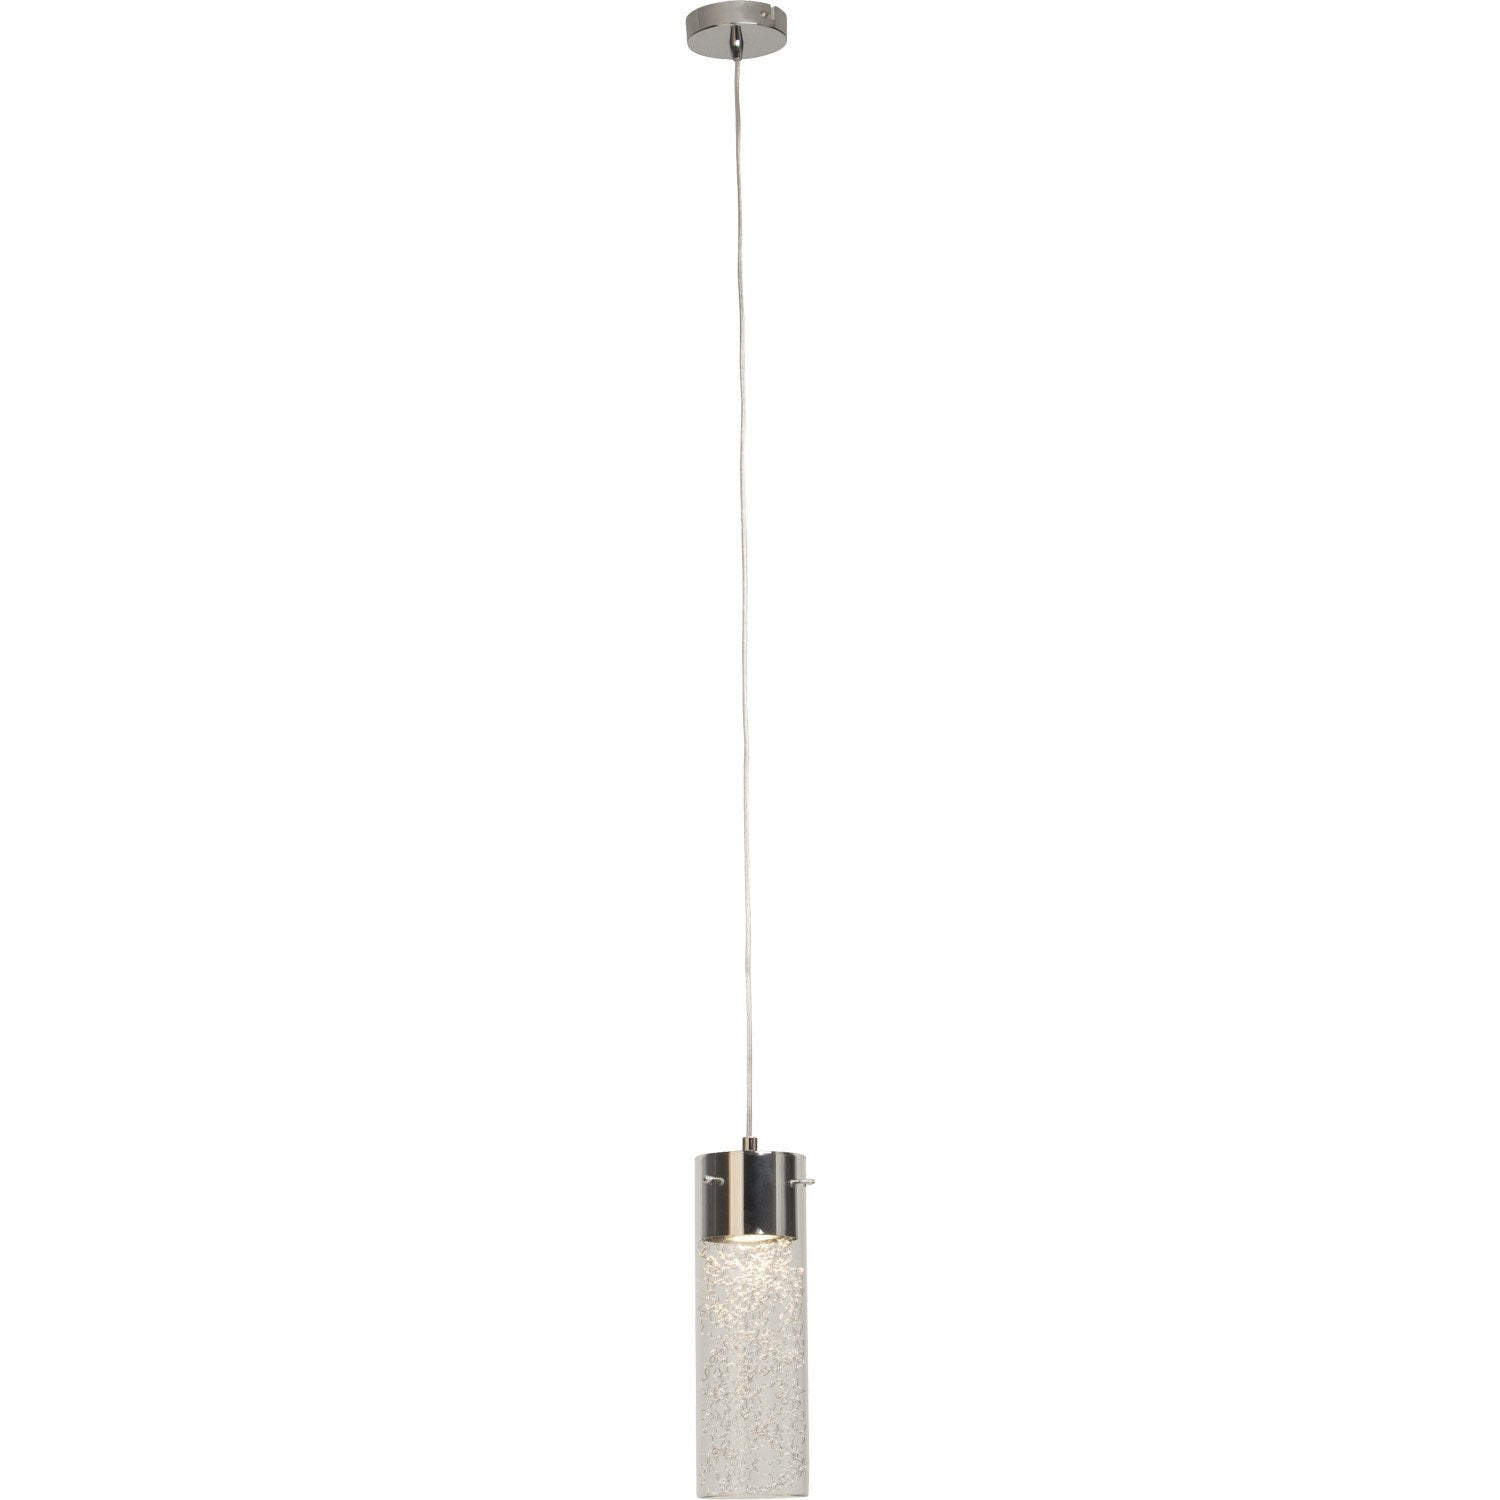 Suspension, gu10 design Joker métal chrome 1 x 7 W BRILLIANT